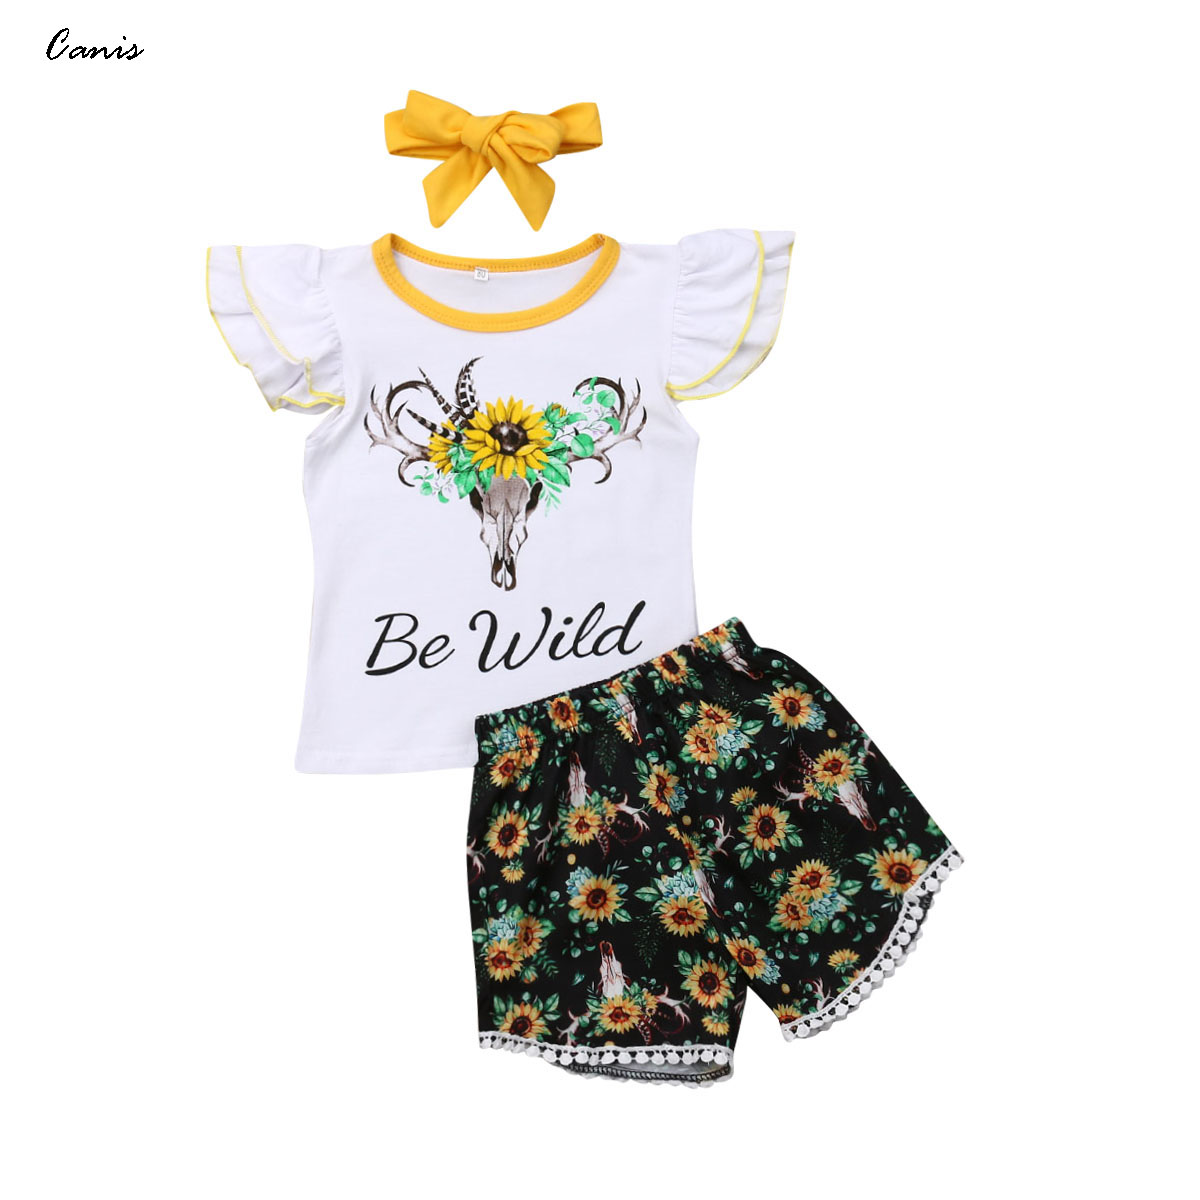 LWXQWDS Toddler Kids Baby Girl Sunflower Tops T-Shirt+Denim Shorts Outfits